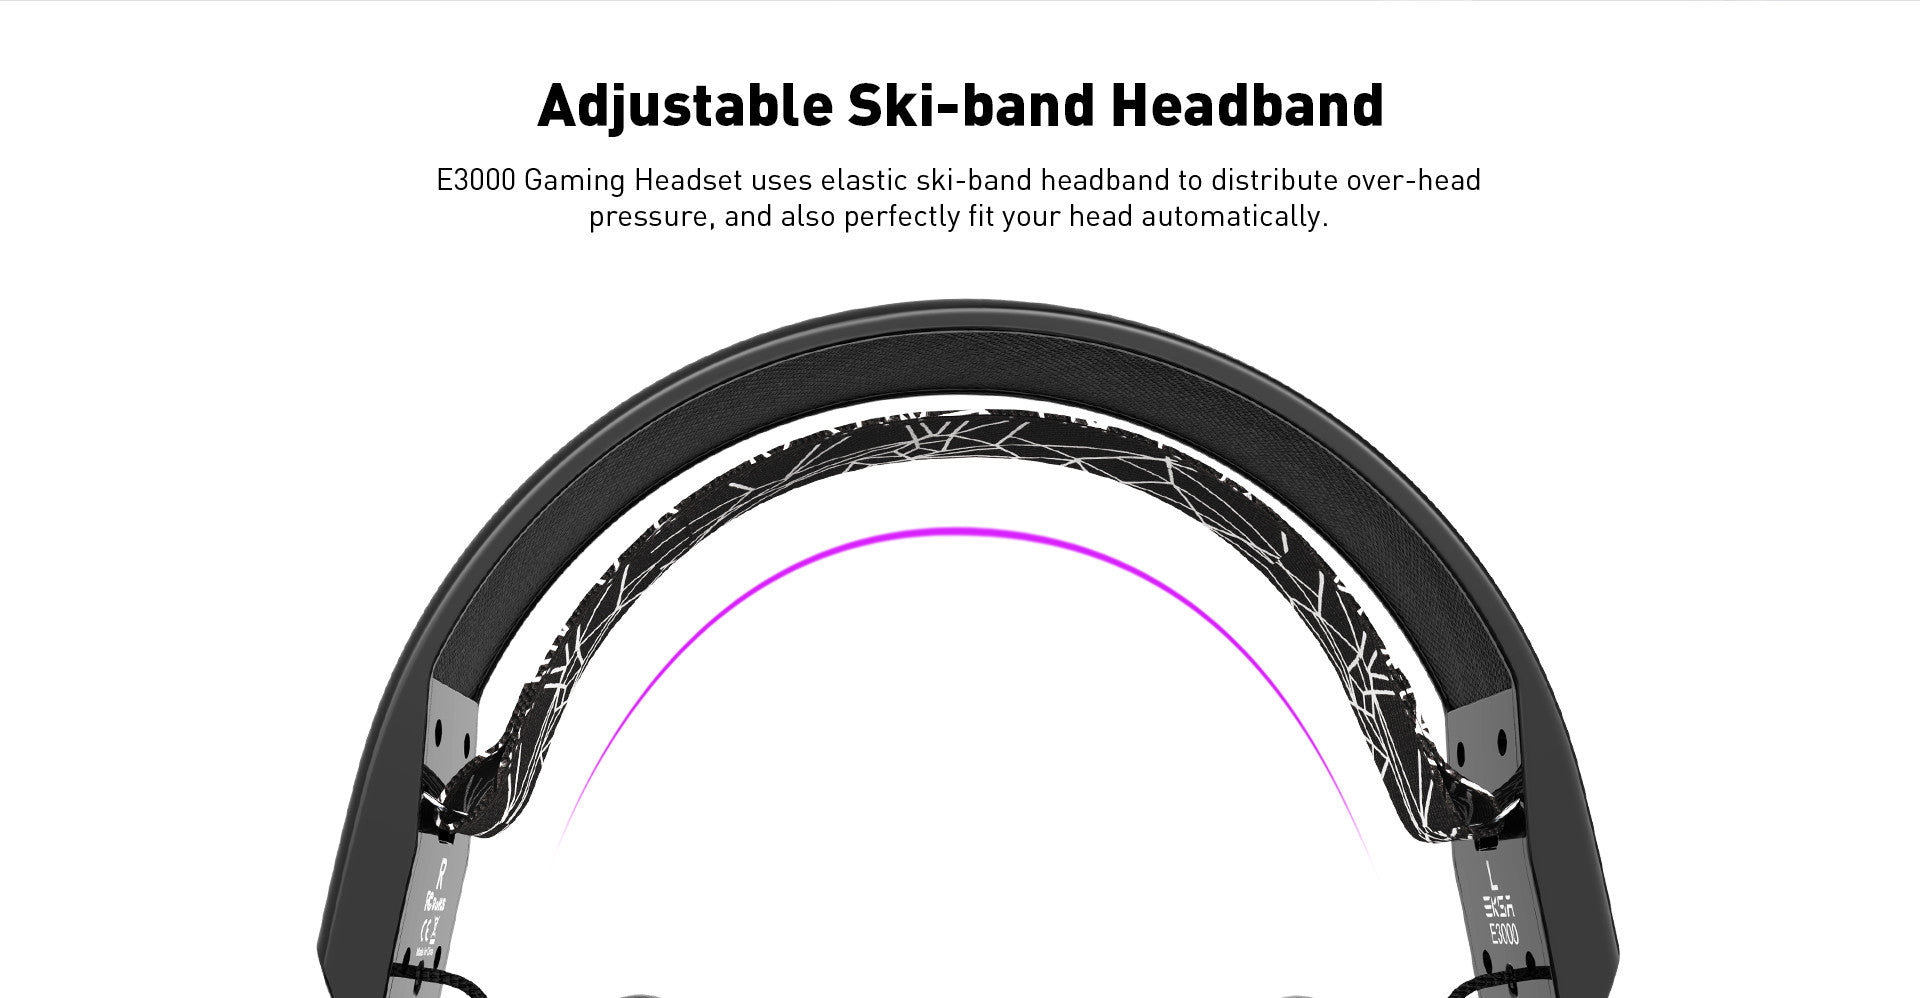 E3000 Gaming Headset uses elastic ski-band headband to distribute over-head pressure, and also perfectly fit your head automatically.